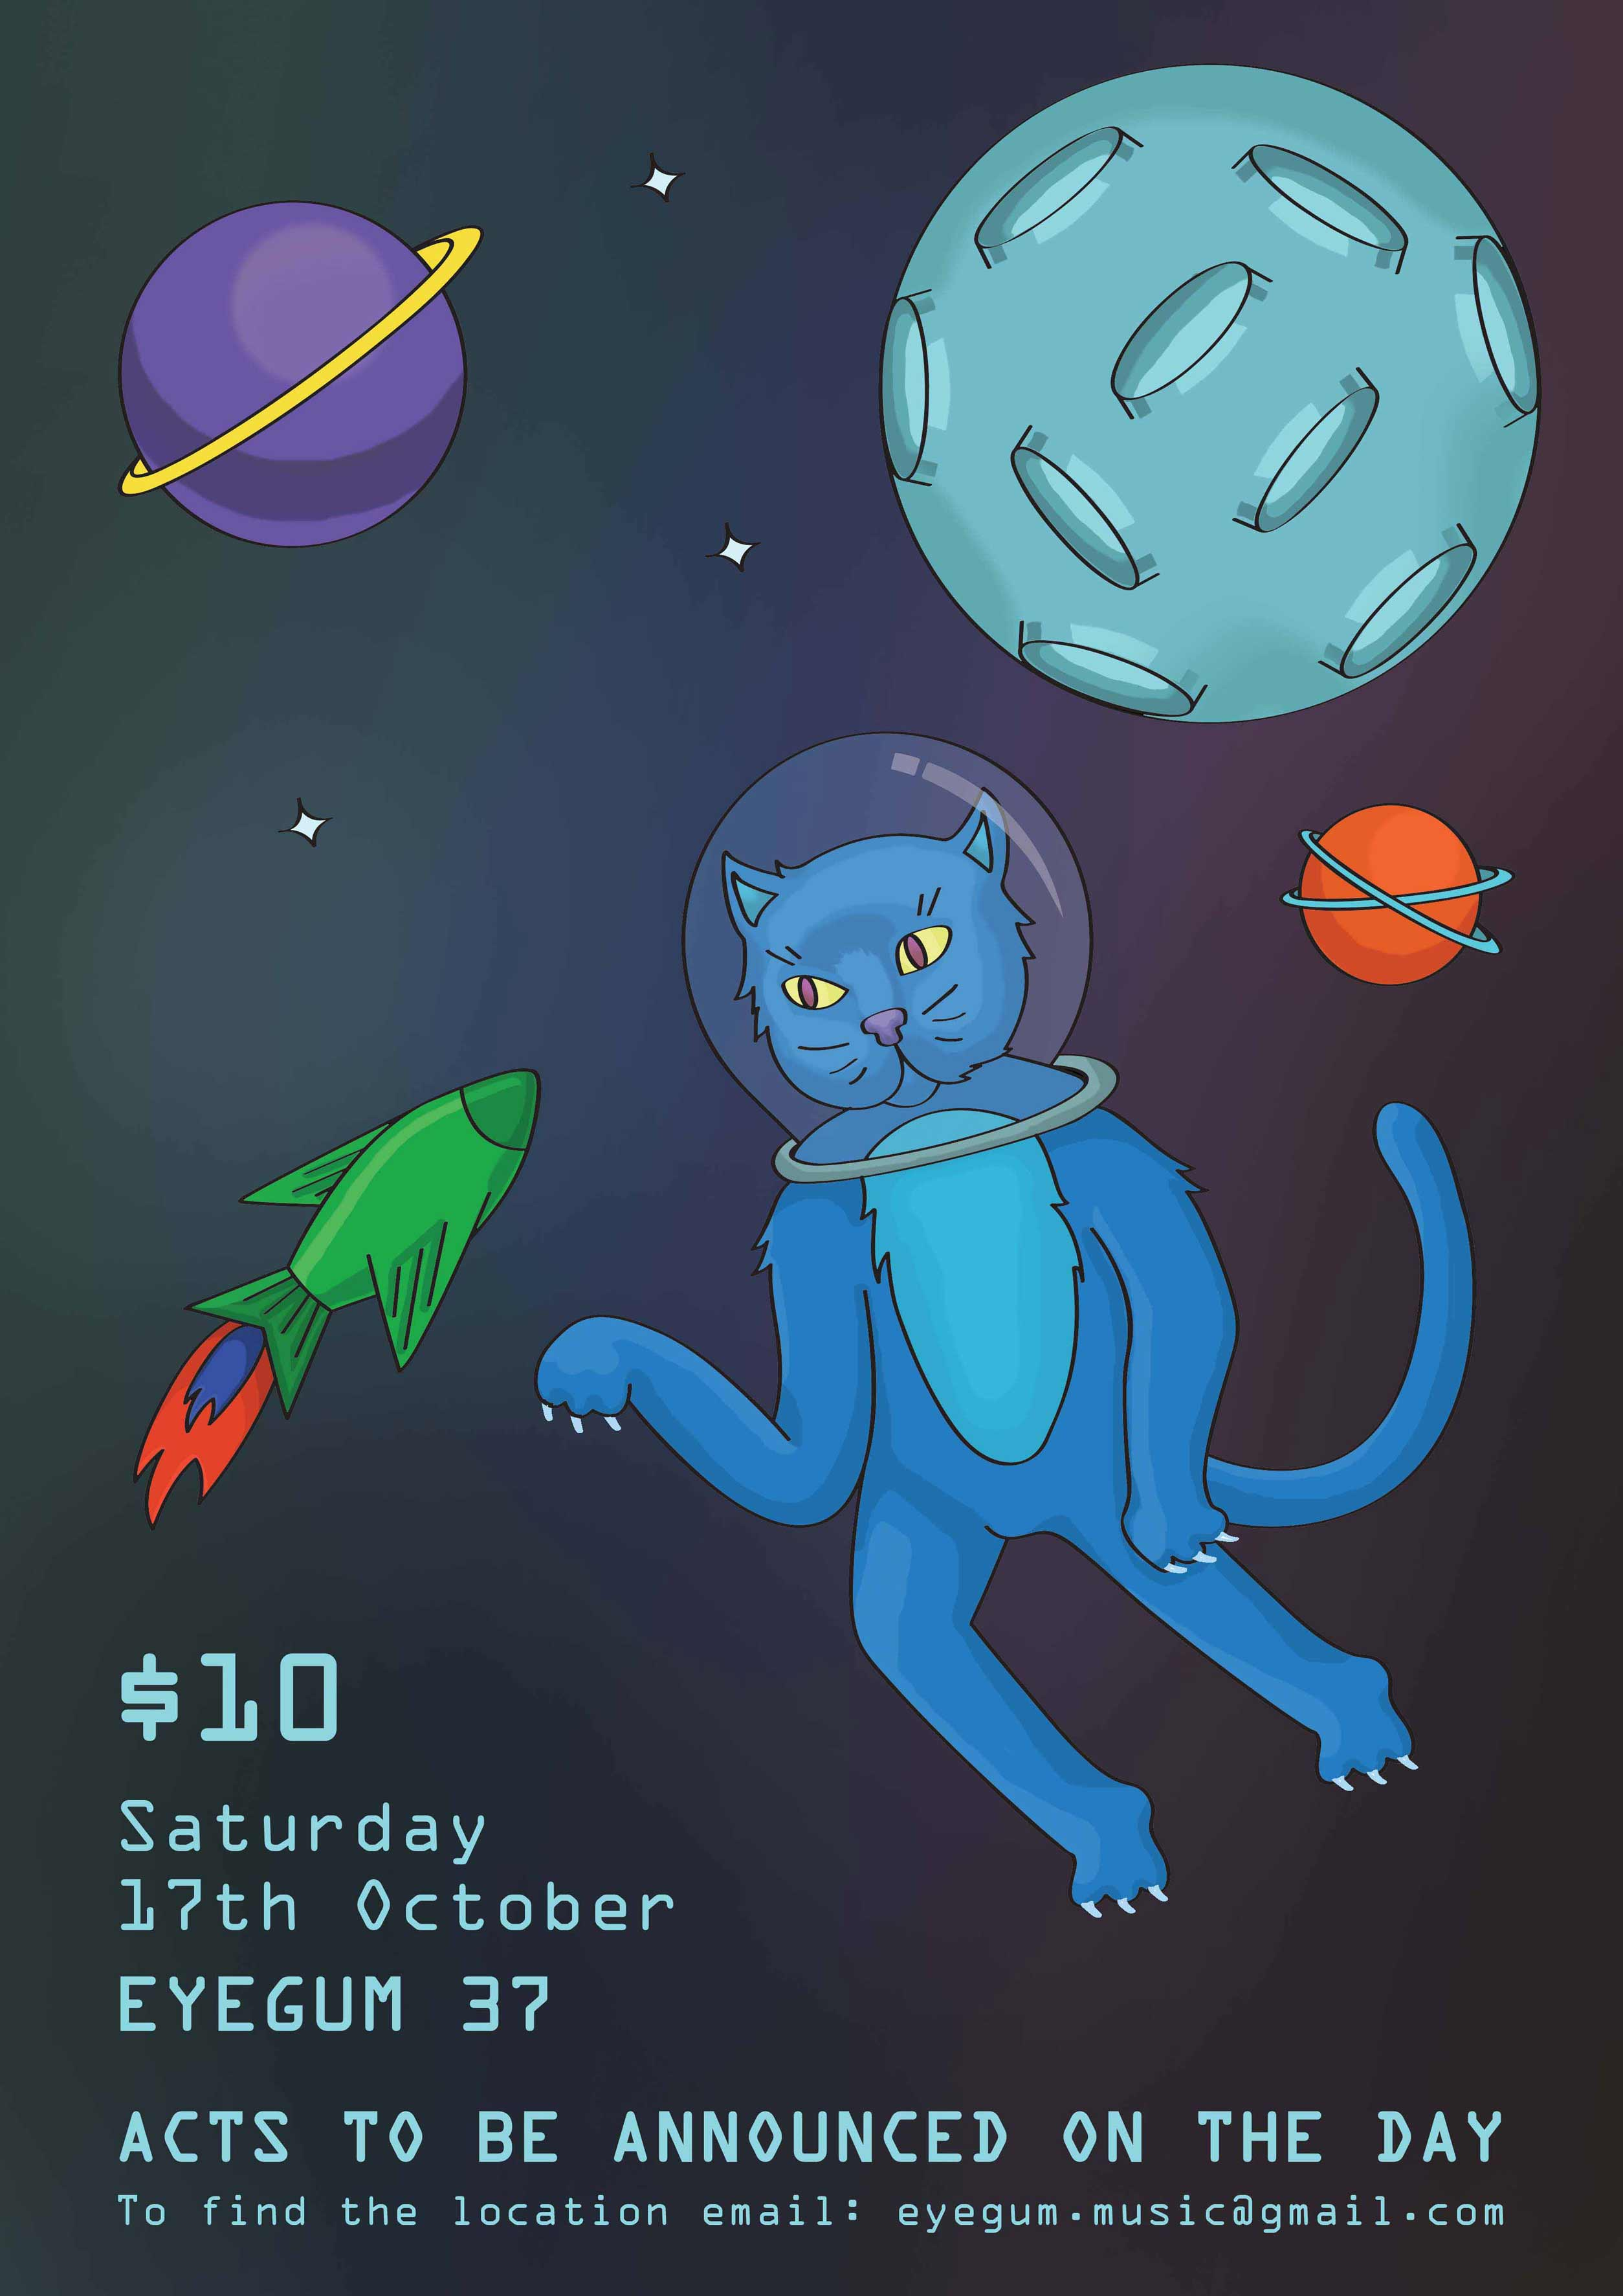 Astrocat in Space, Eye Gum Poster 37 by Yana Brewster